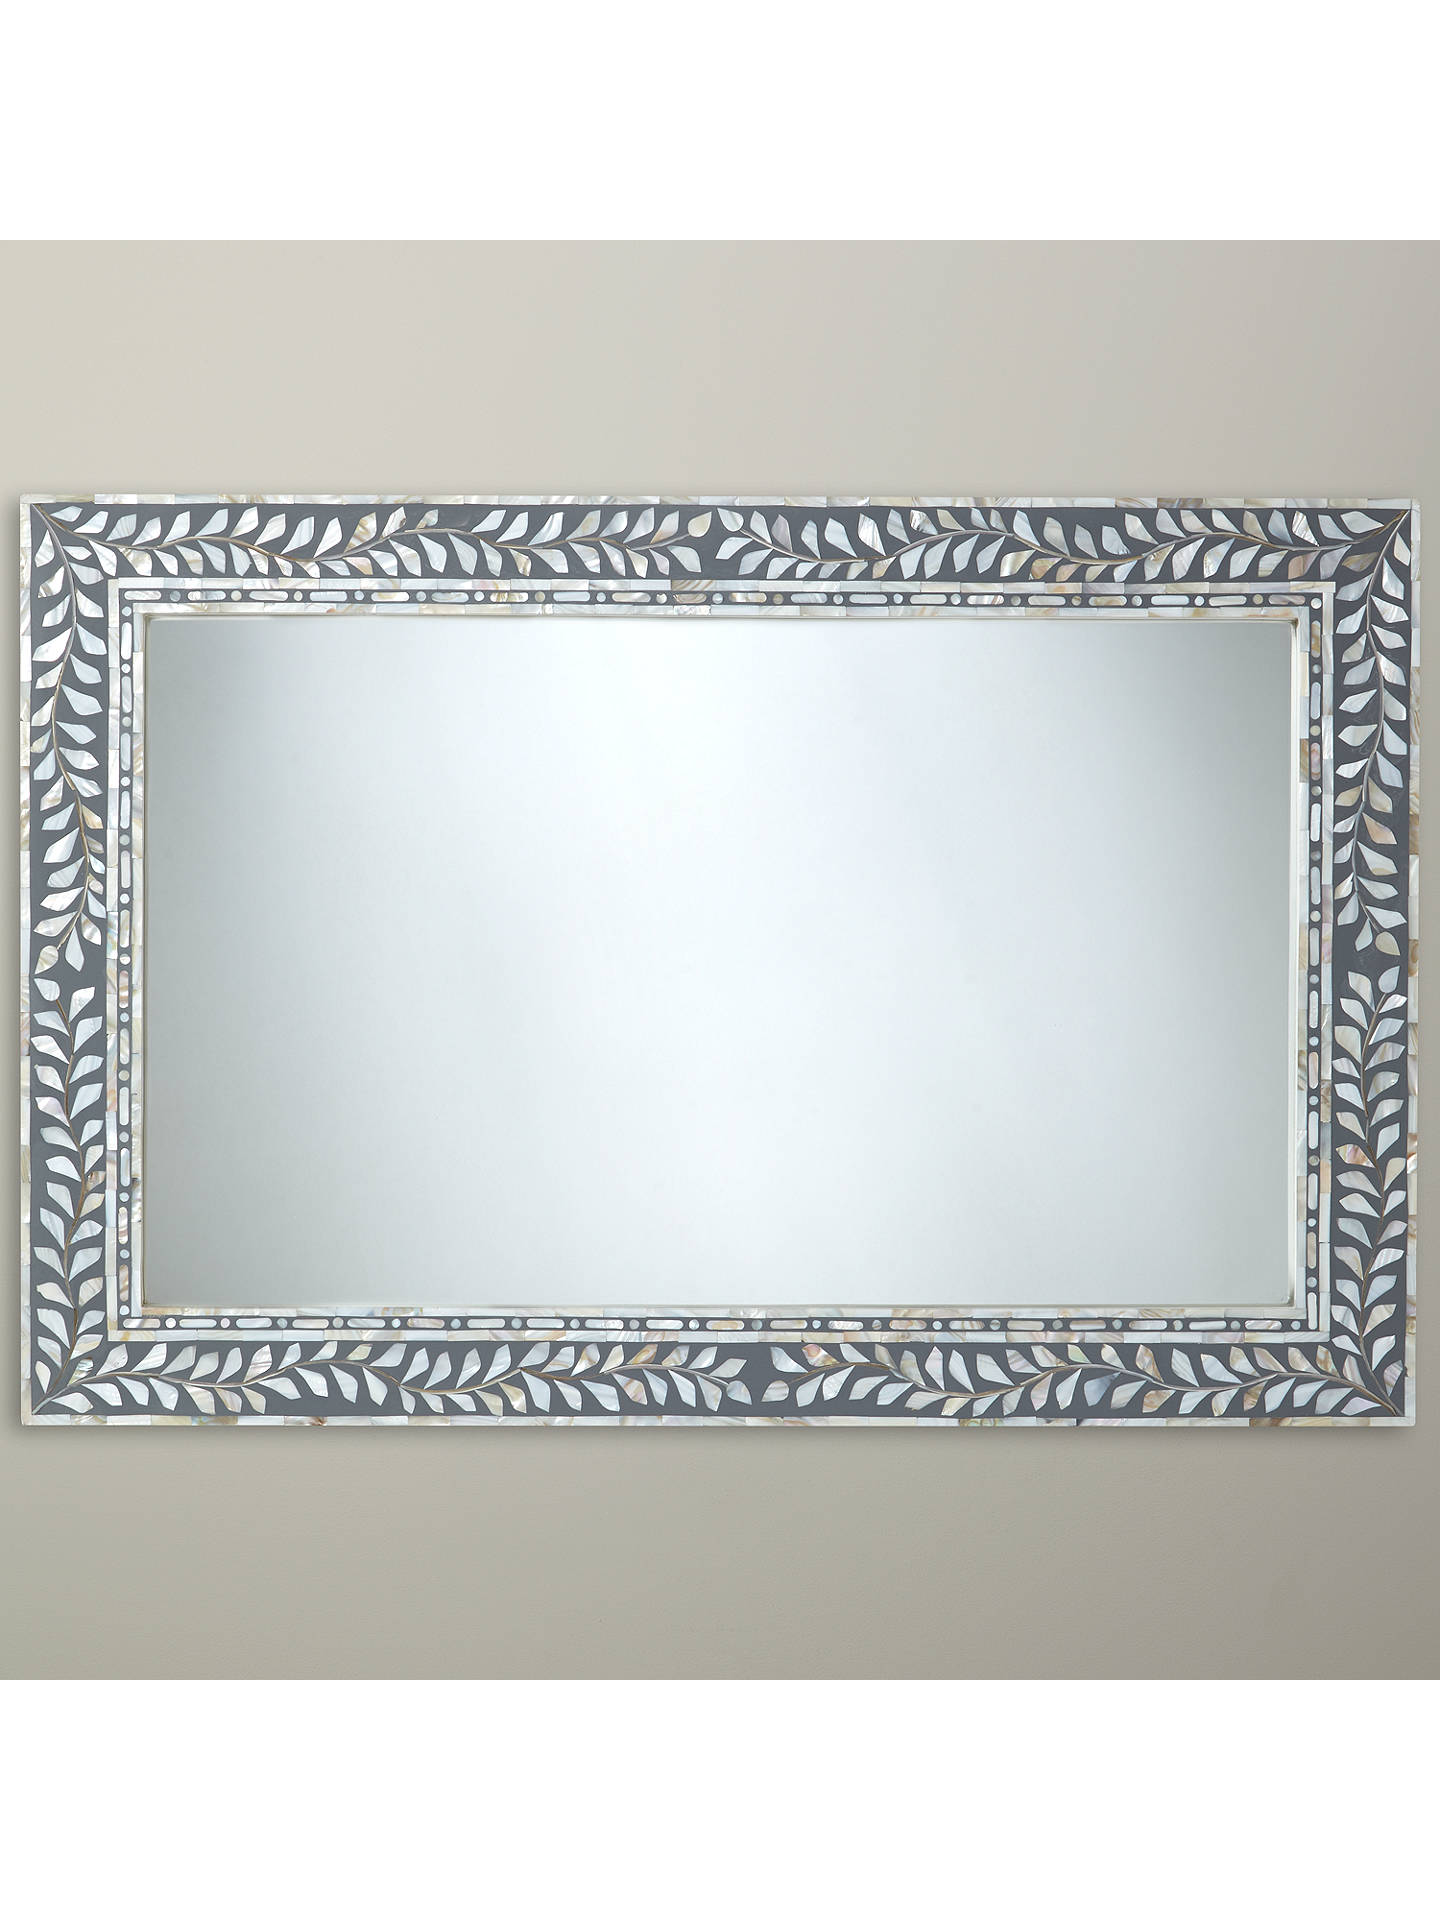 Buyjohn lewis partners mother of pearl mirror 60 x 90cm natural online at